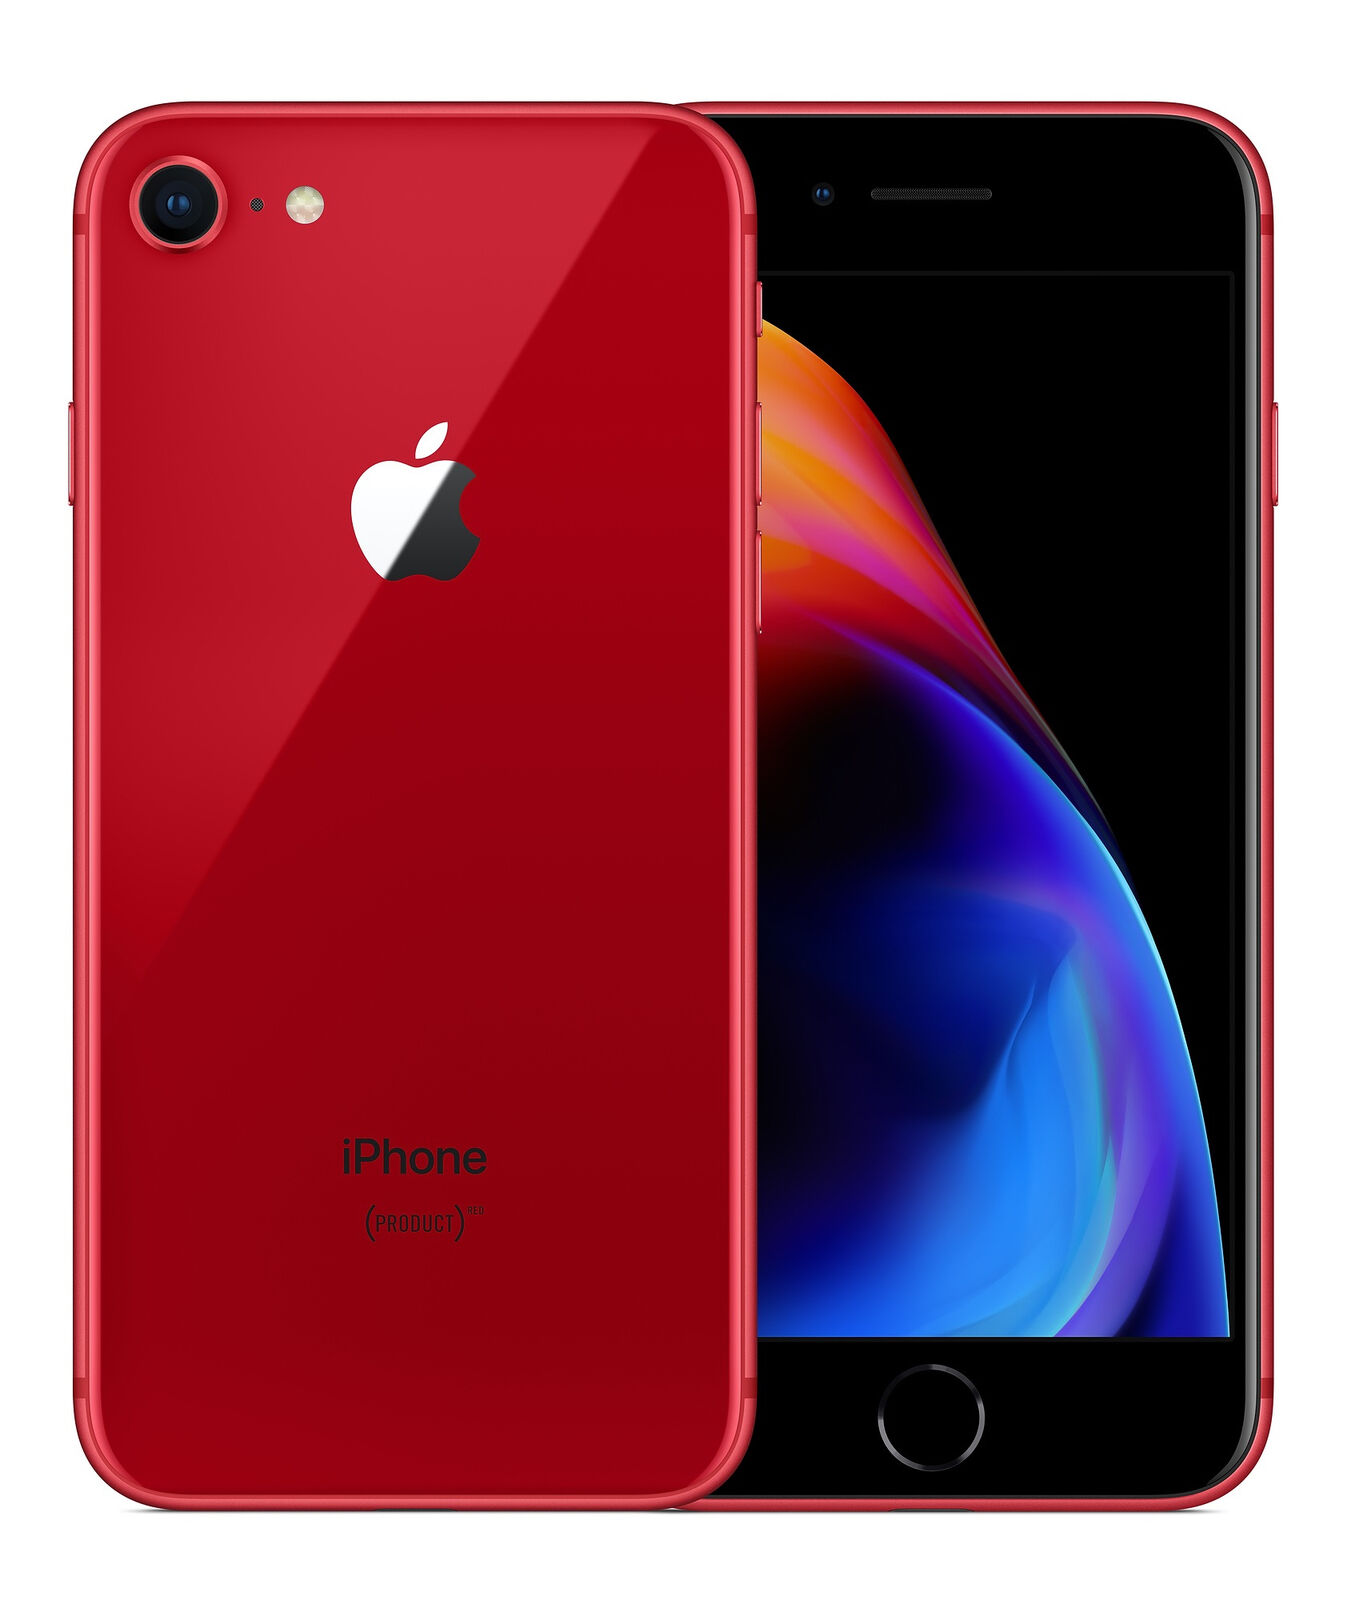 Apple iPhone 8 (PRODUCT)RED - 256GB - (AT&T) A1905 (GSM)